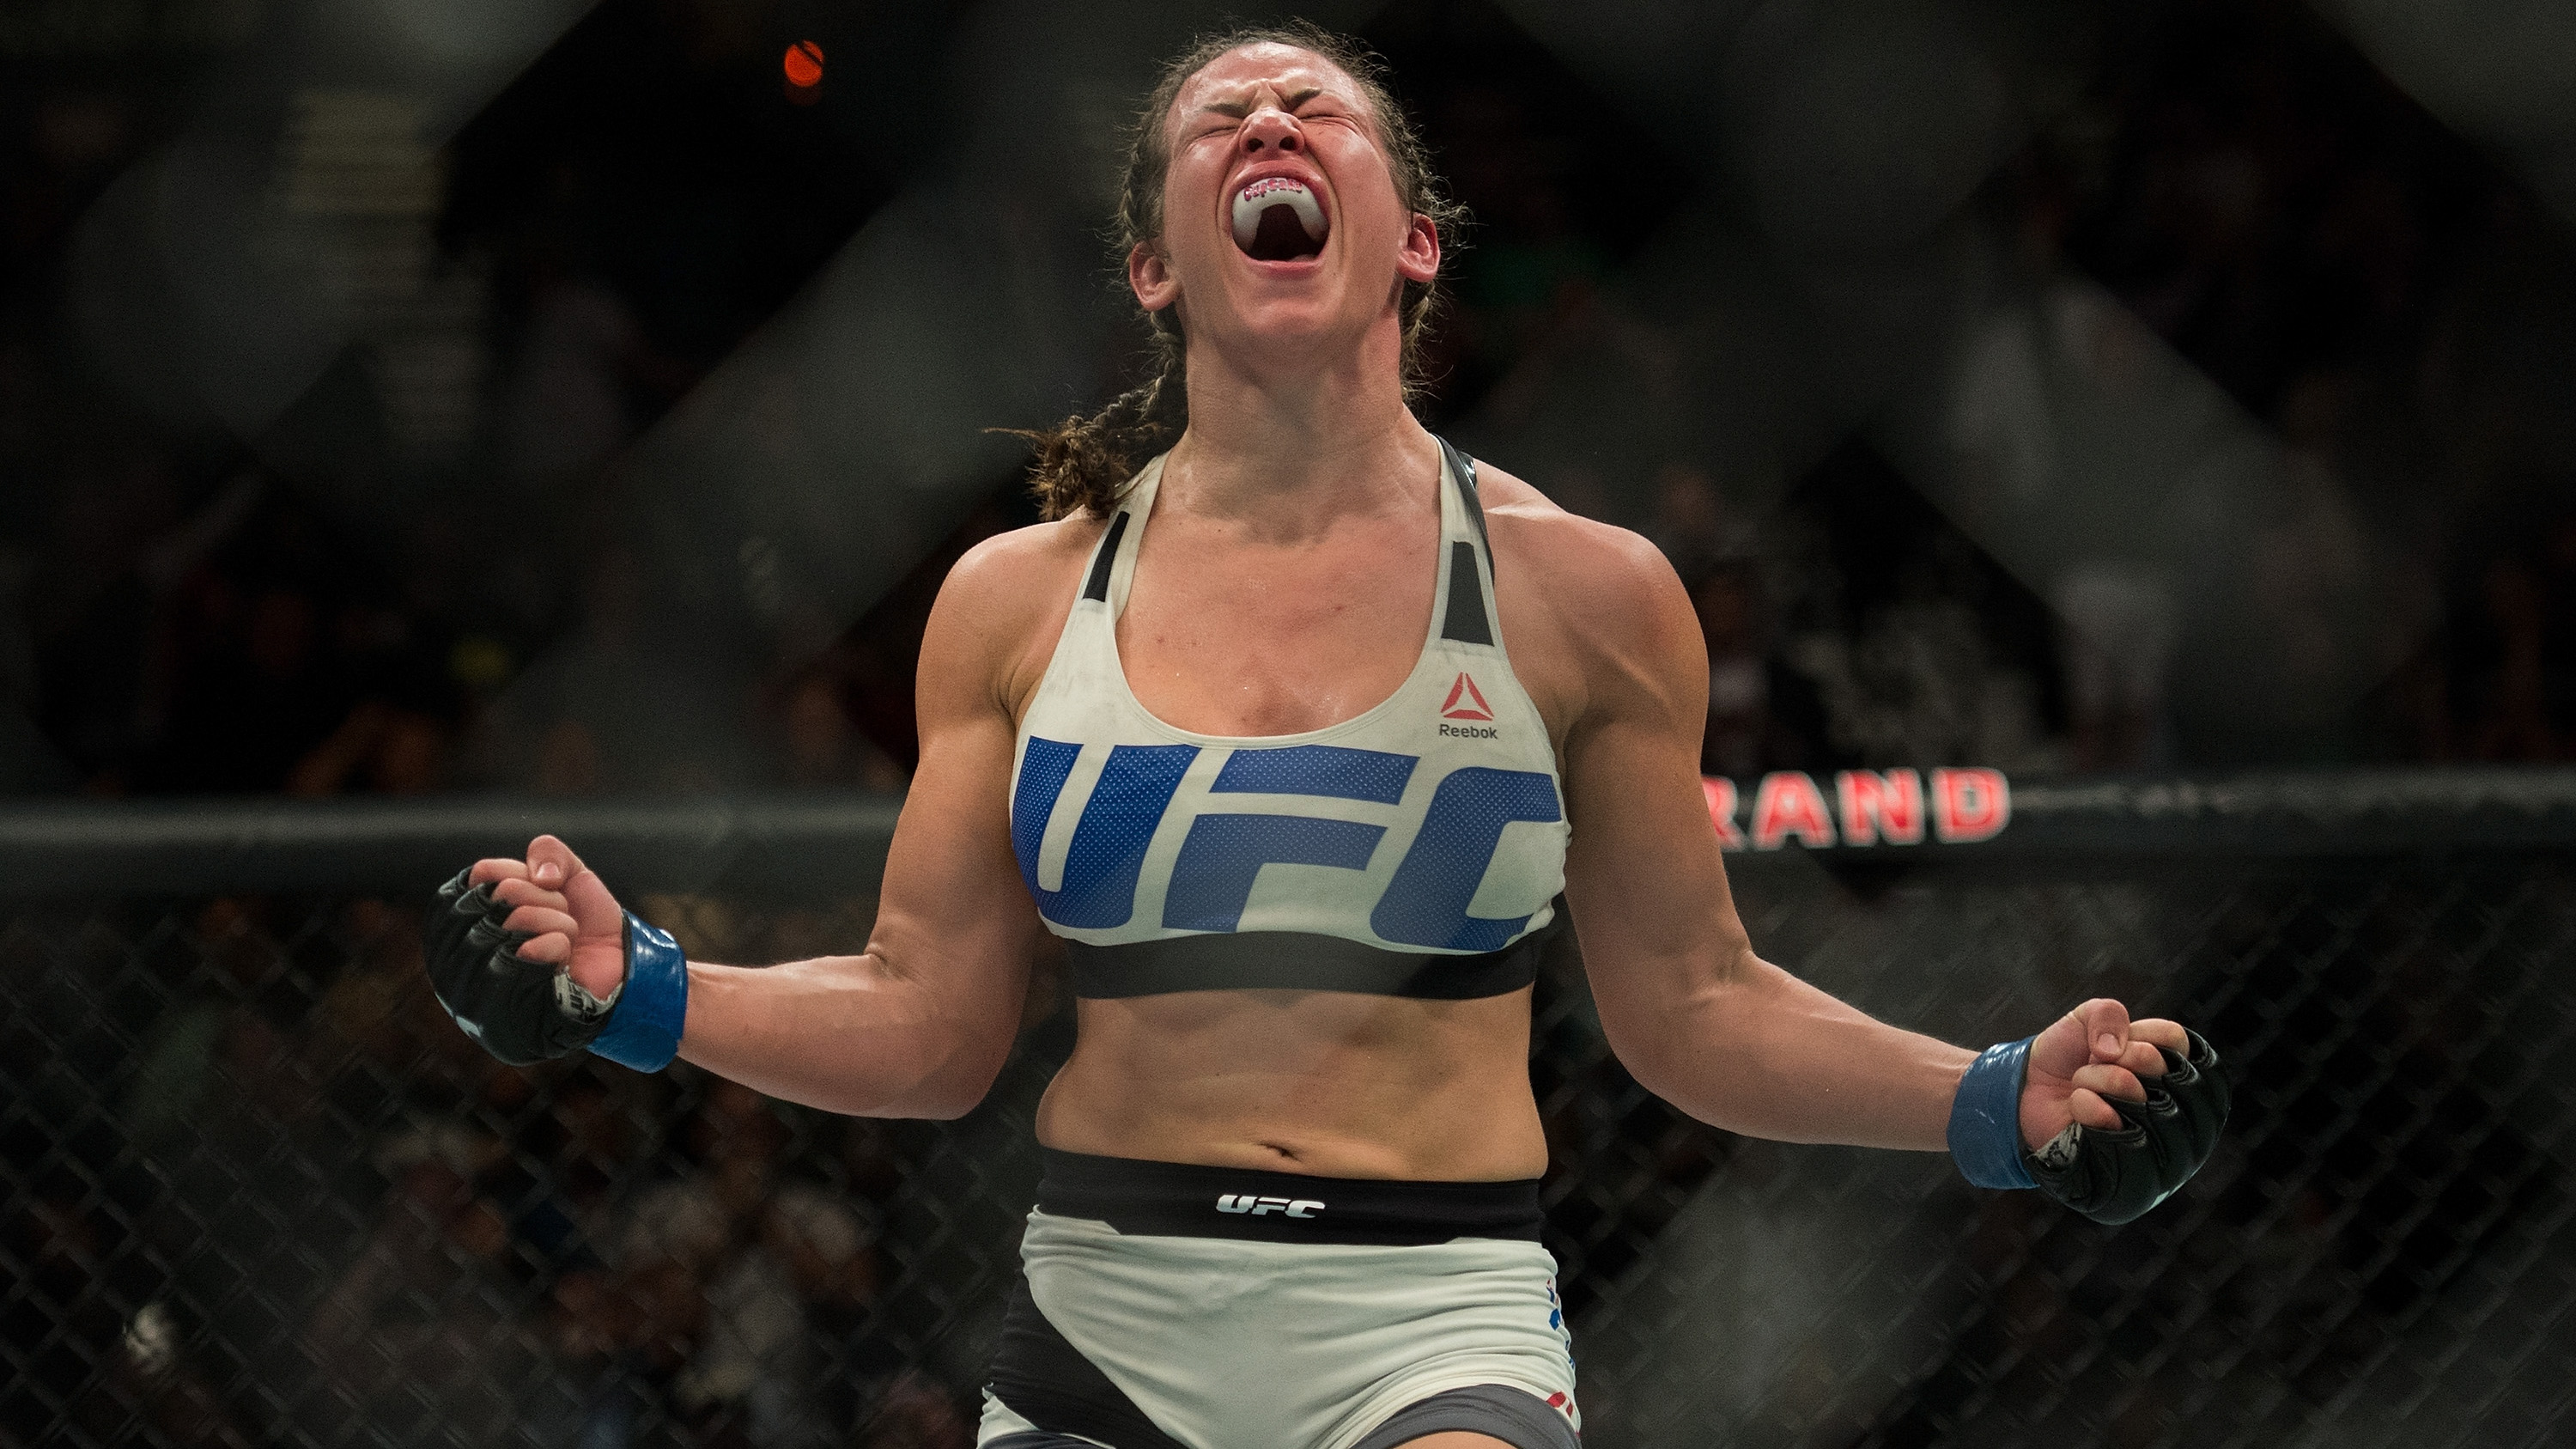 Miesha Tate celebrates after defeating Holly Holm at UFC 196